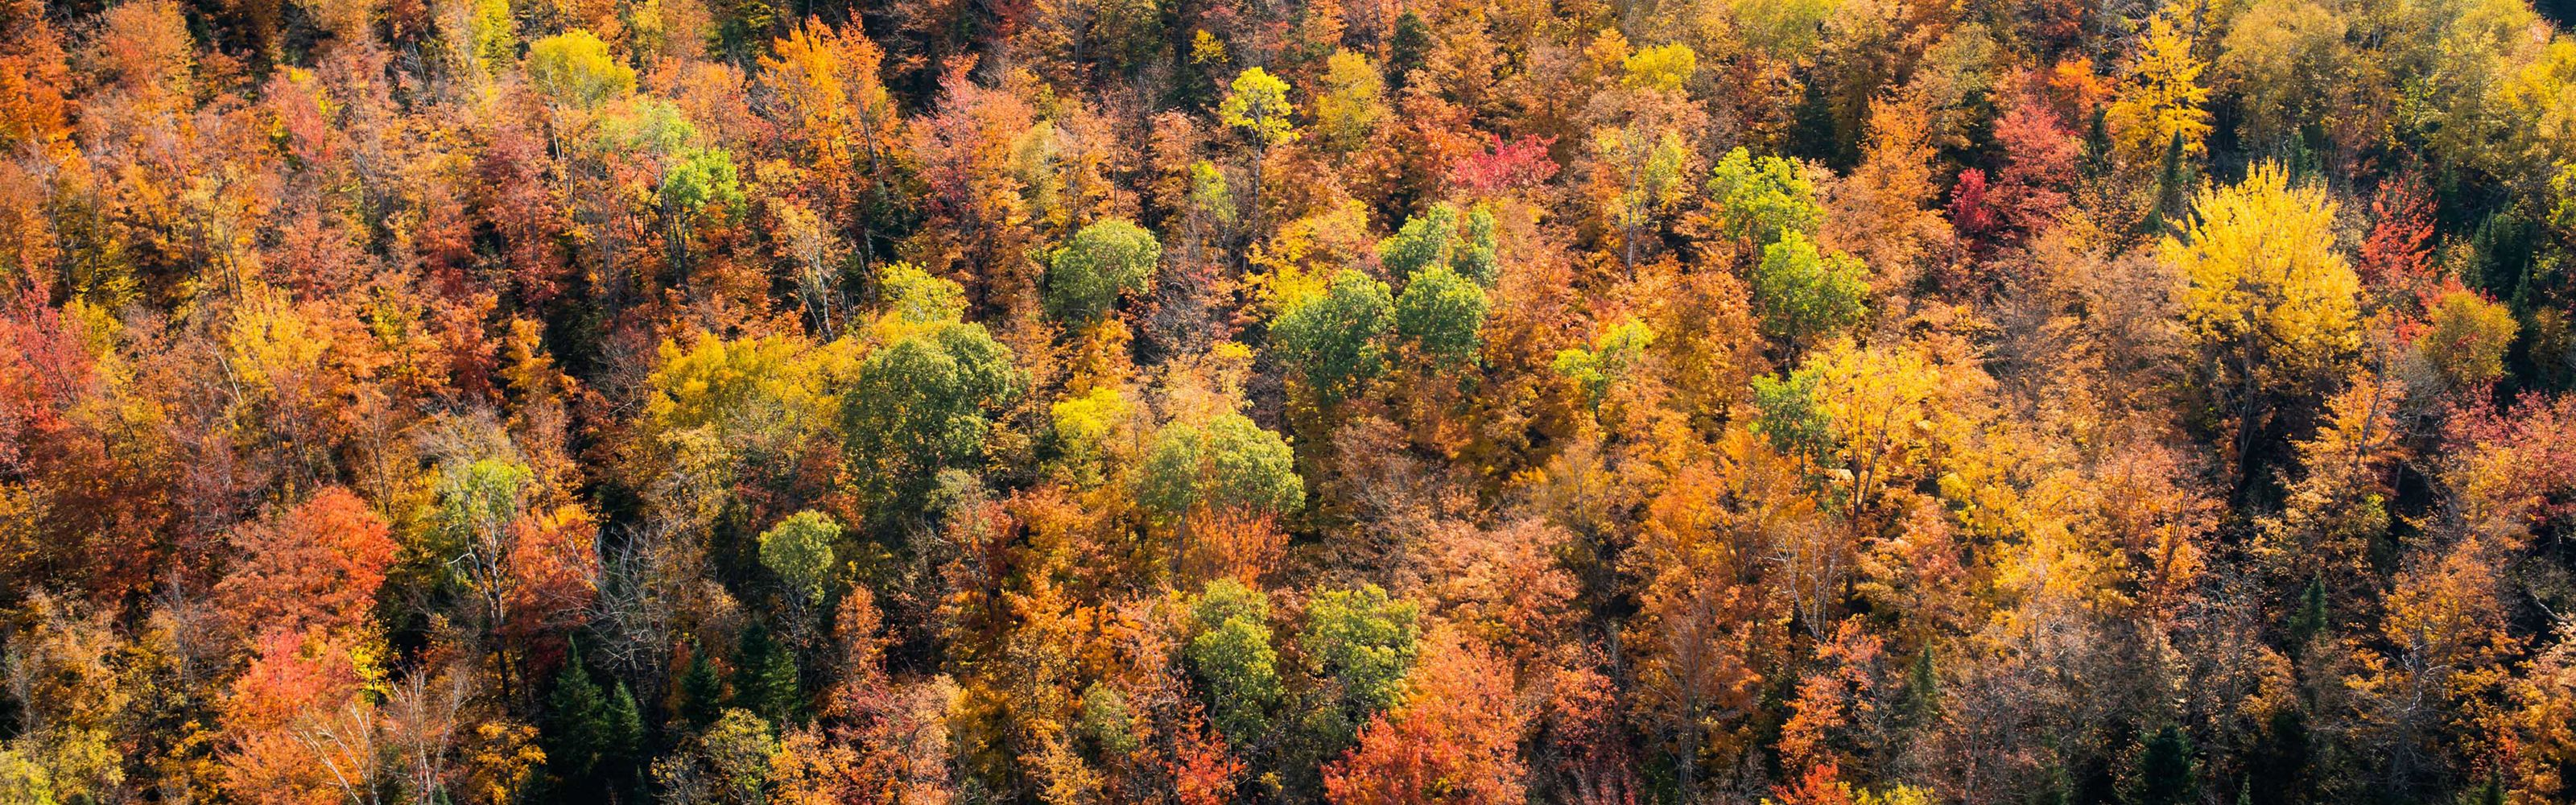 Overhead view of dense orange, autumn trees